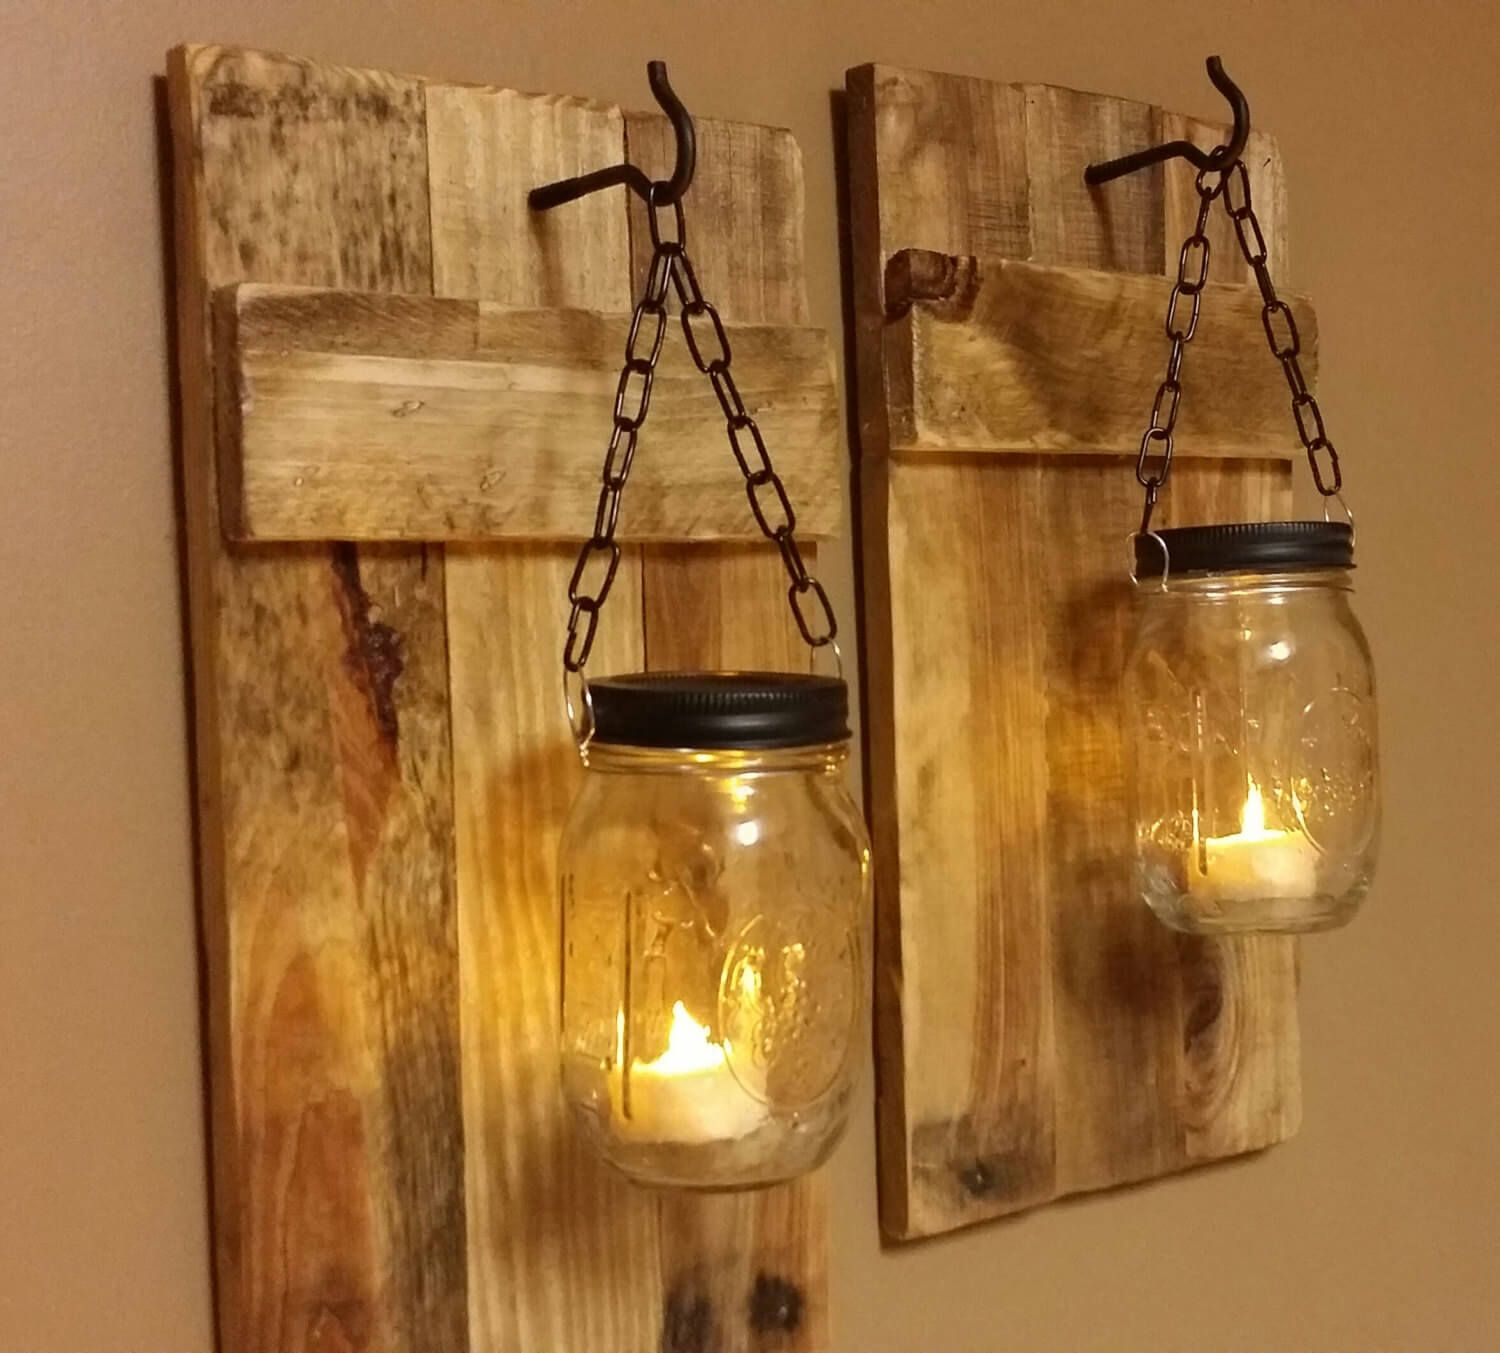 Western Ideas For Home Decorating: 21 DIY Rustic Home Decor Ideas For Your Home Project